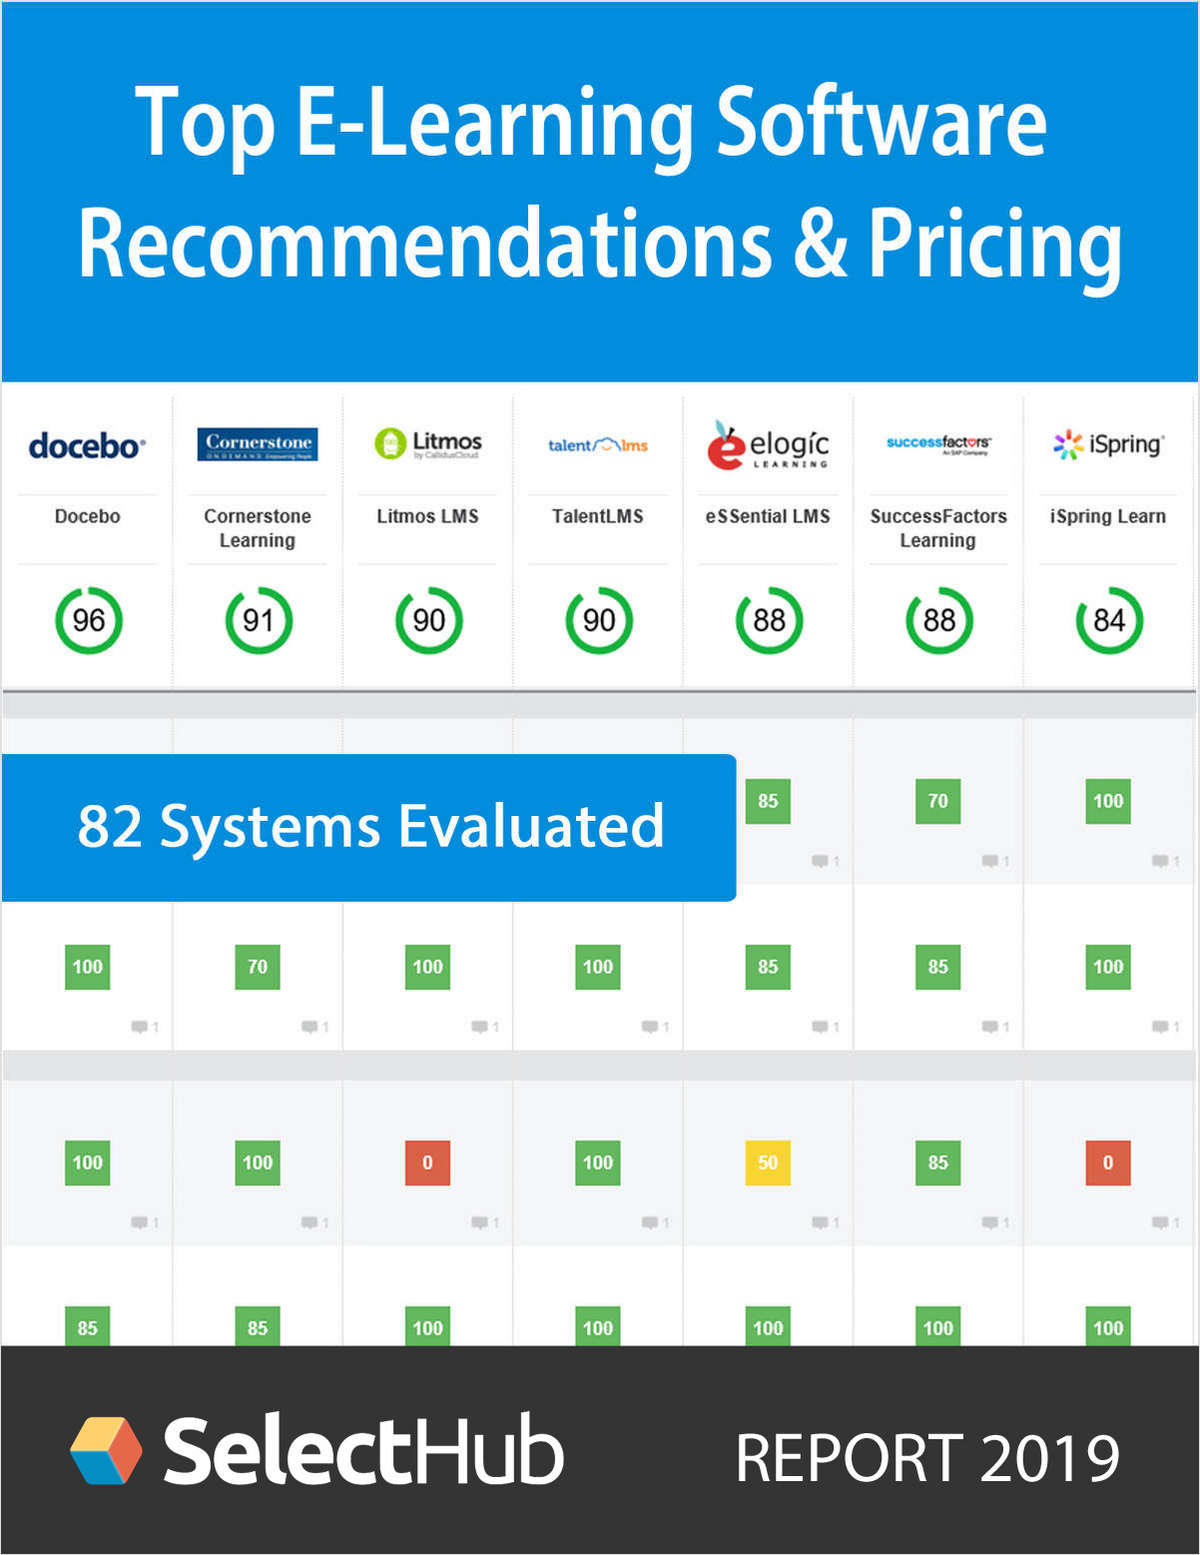 Top E-Learning Software--Get Free Pricing & Expert Recommendations